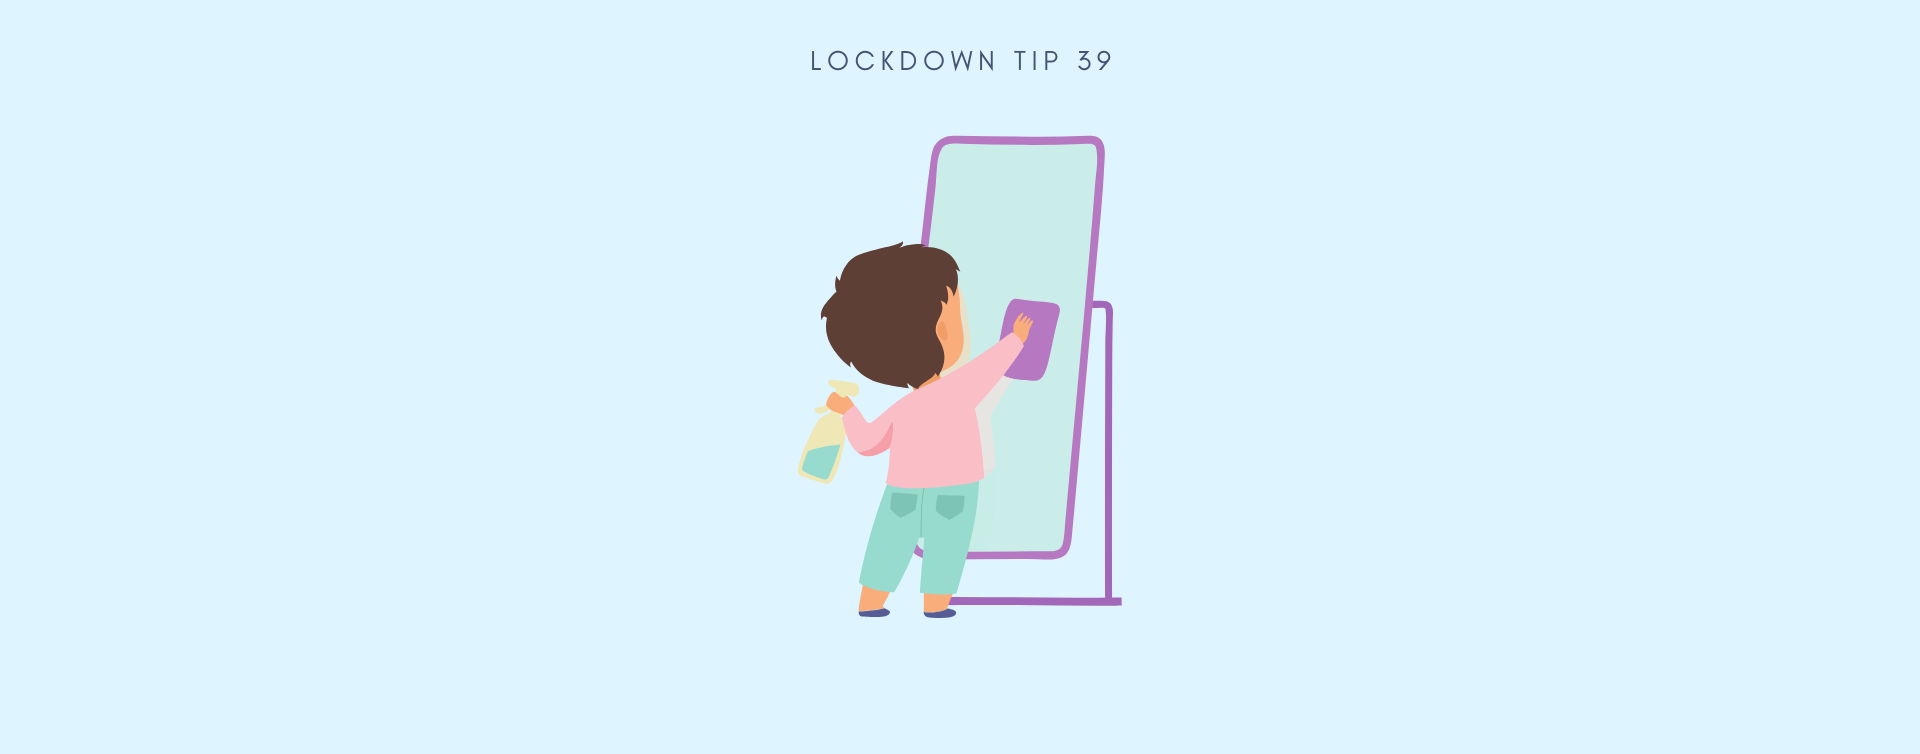 MCSA Lockdown Tip 39